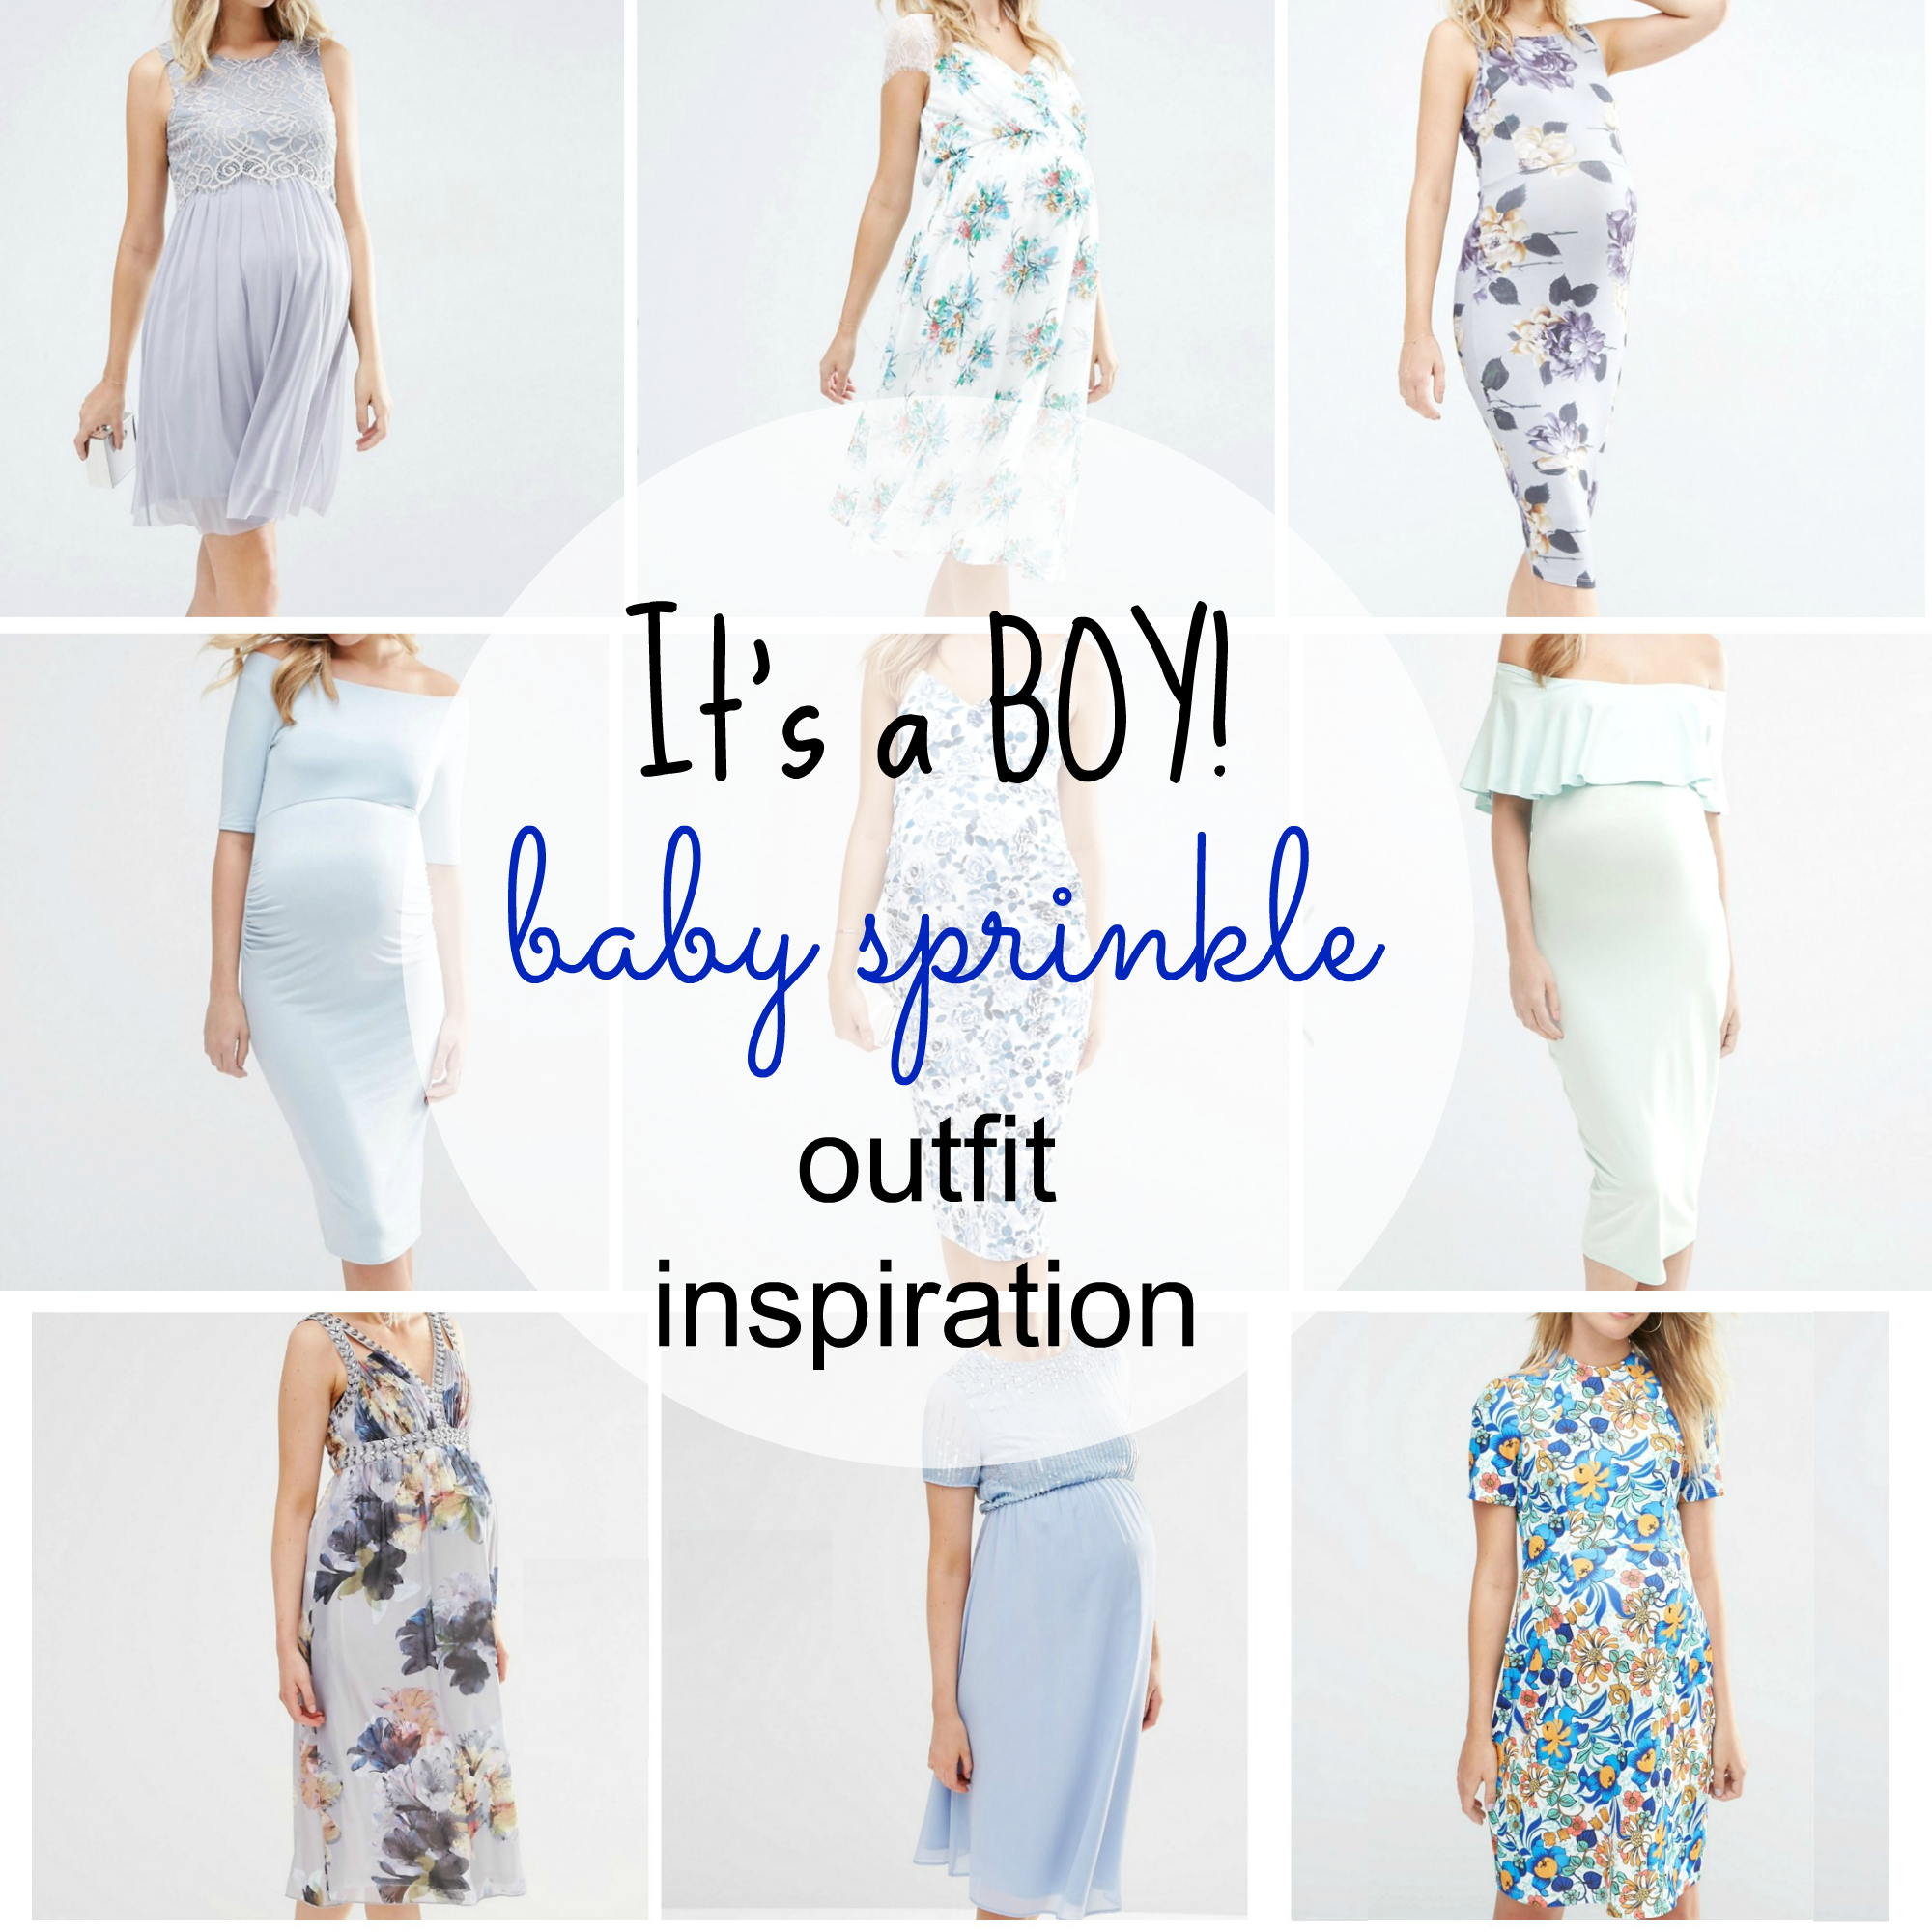 It's a boy – Baby Sprinkle Outfit inspiration